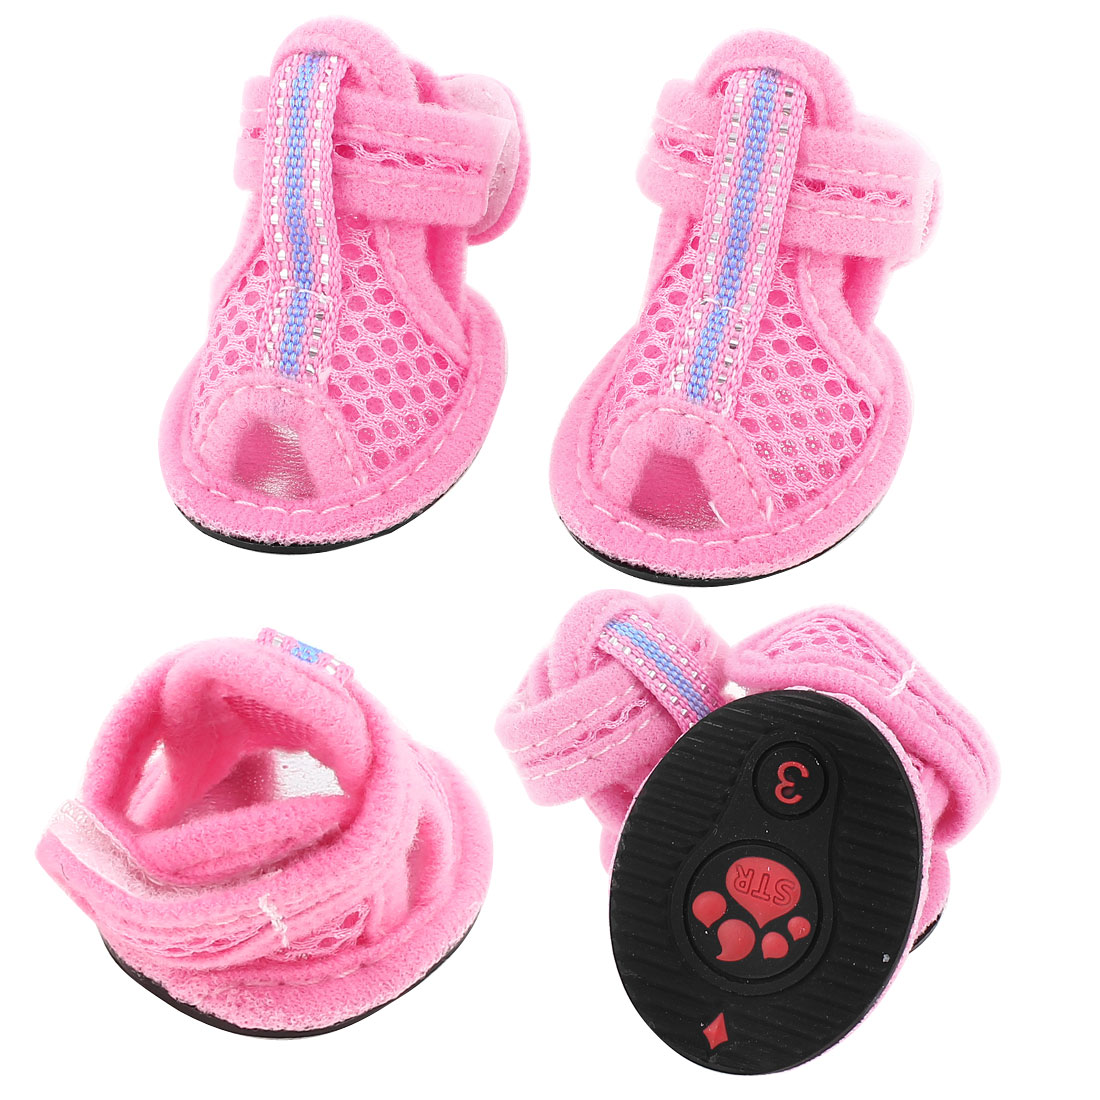 2 Pairs Pet Doggie Pink Mesh Vamp Sandals Shoes Size S